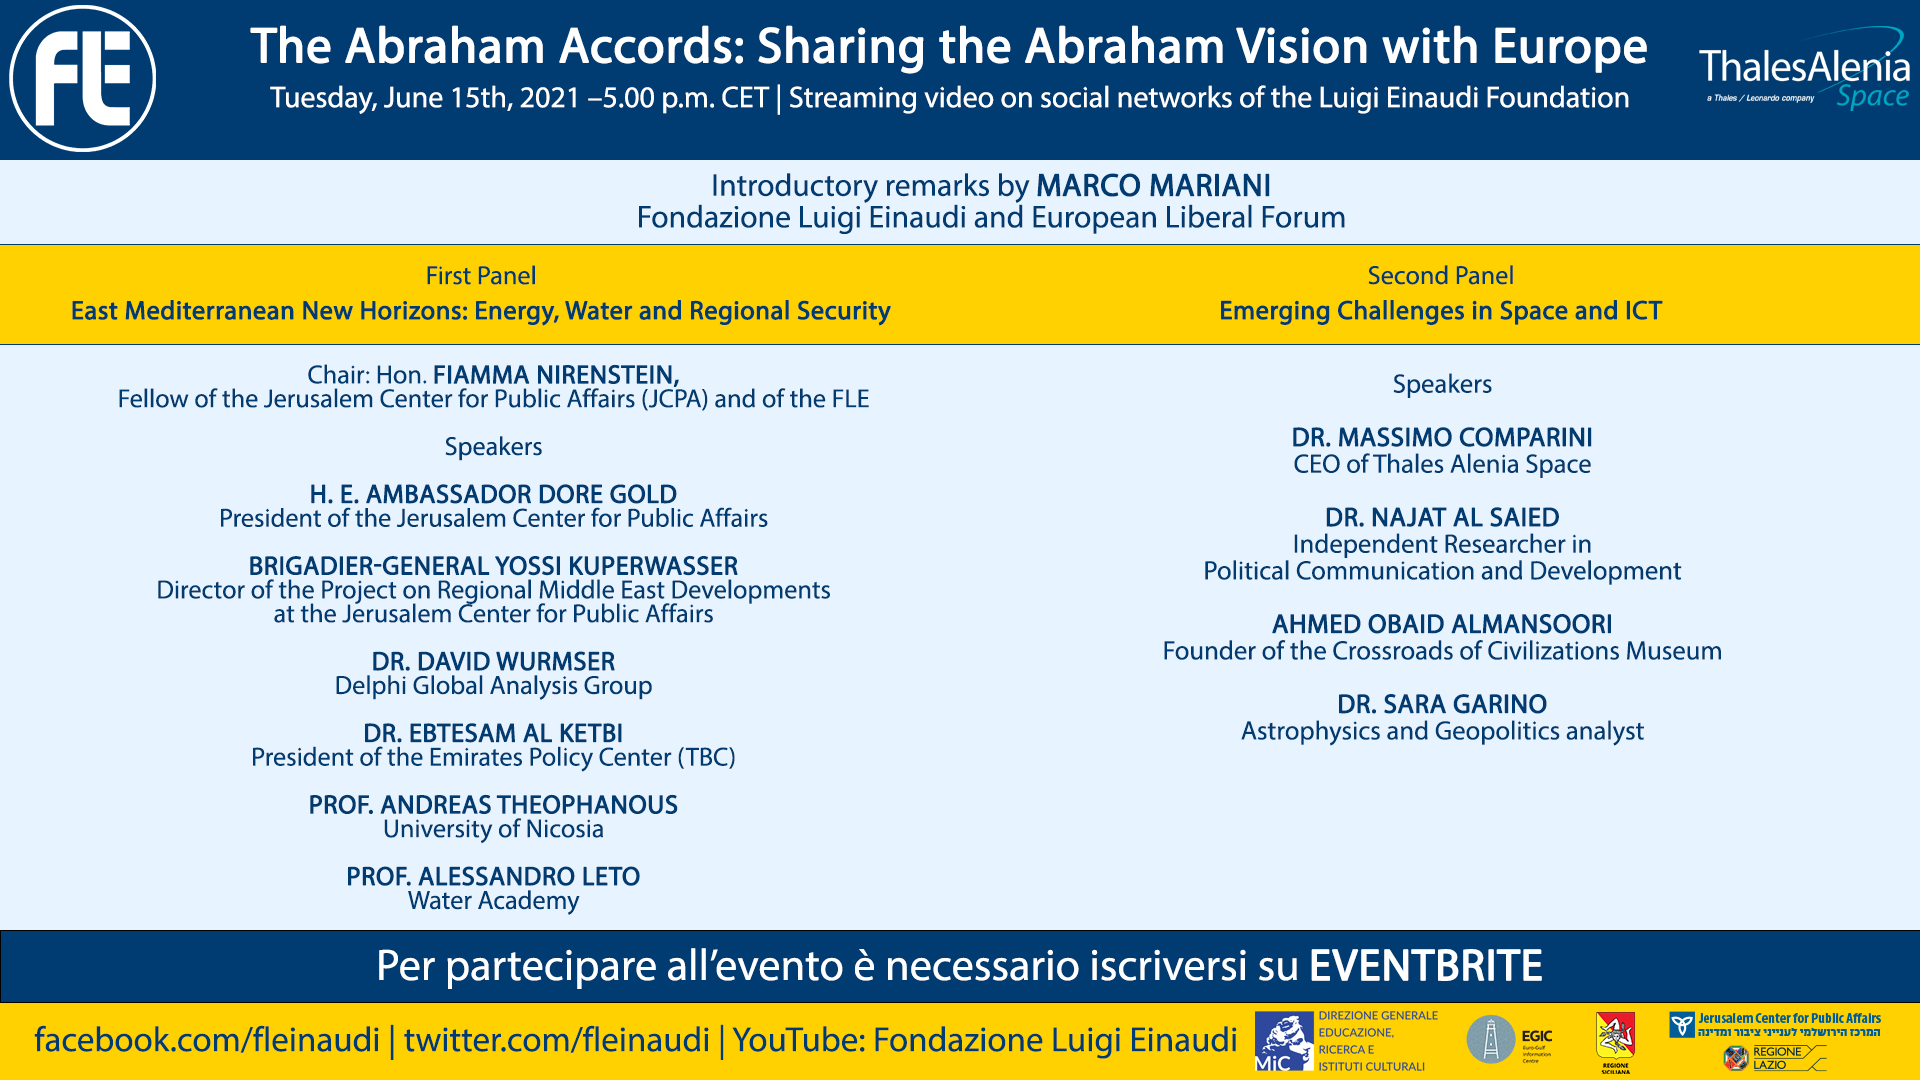 The Abraham Accords: Sharing the Abraham Vision with Europe